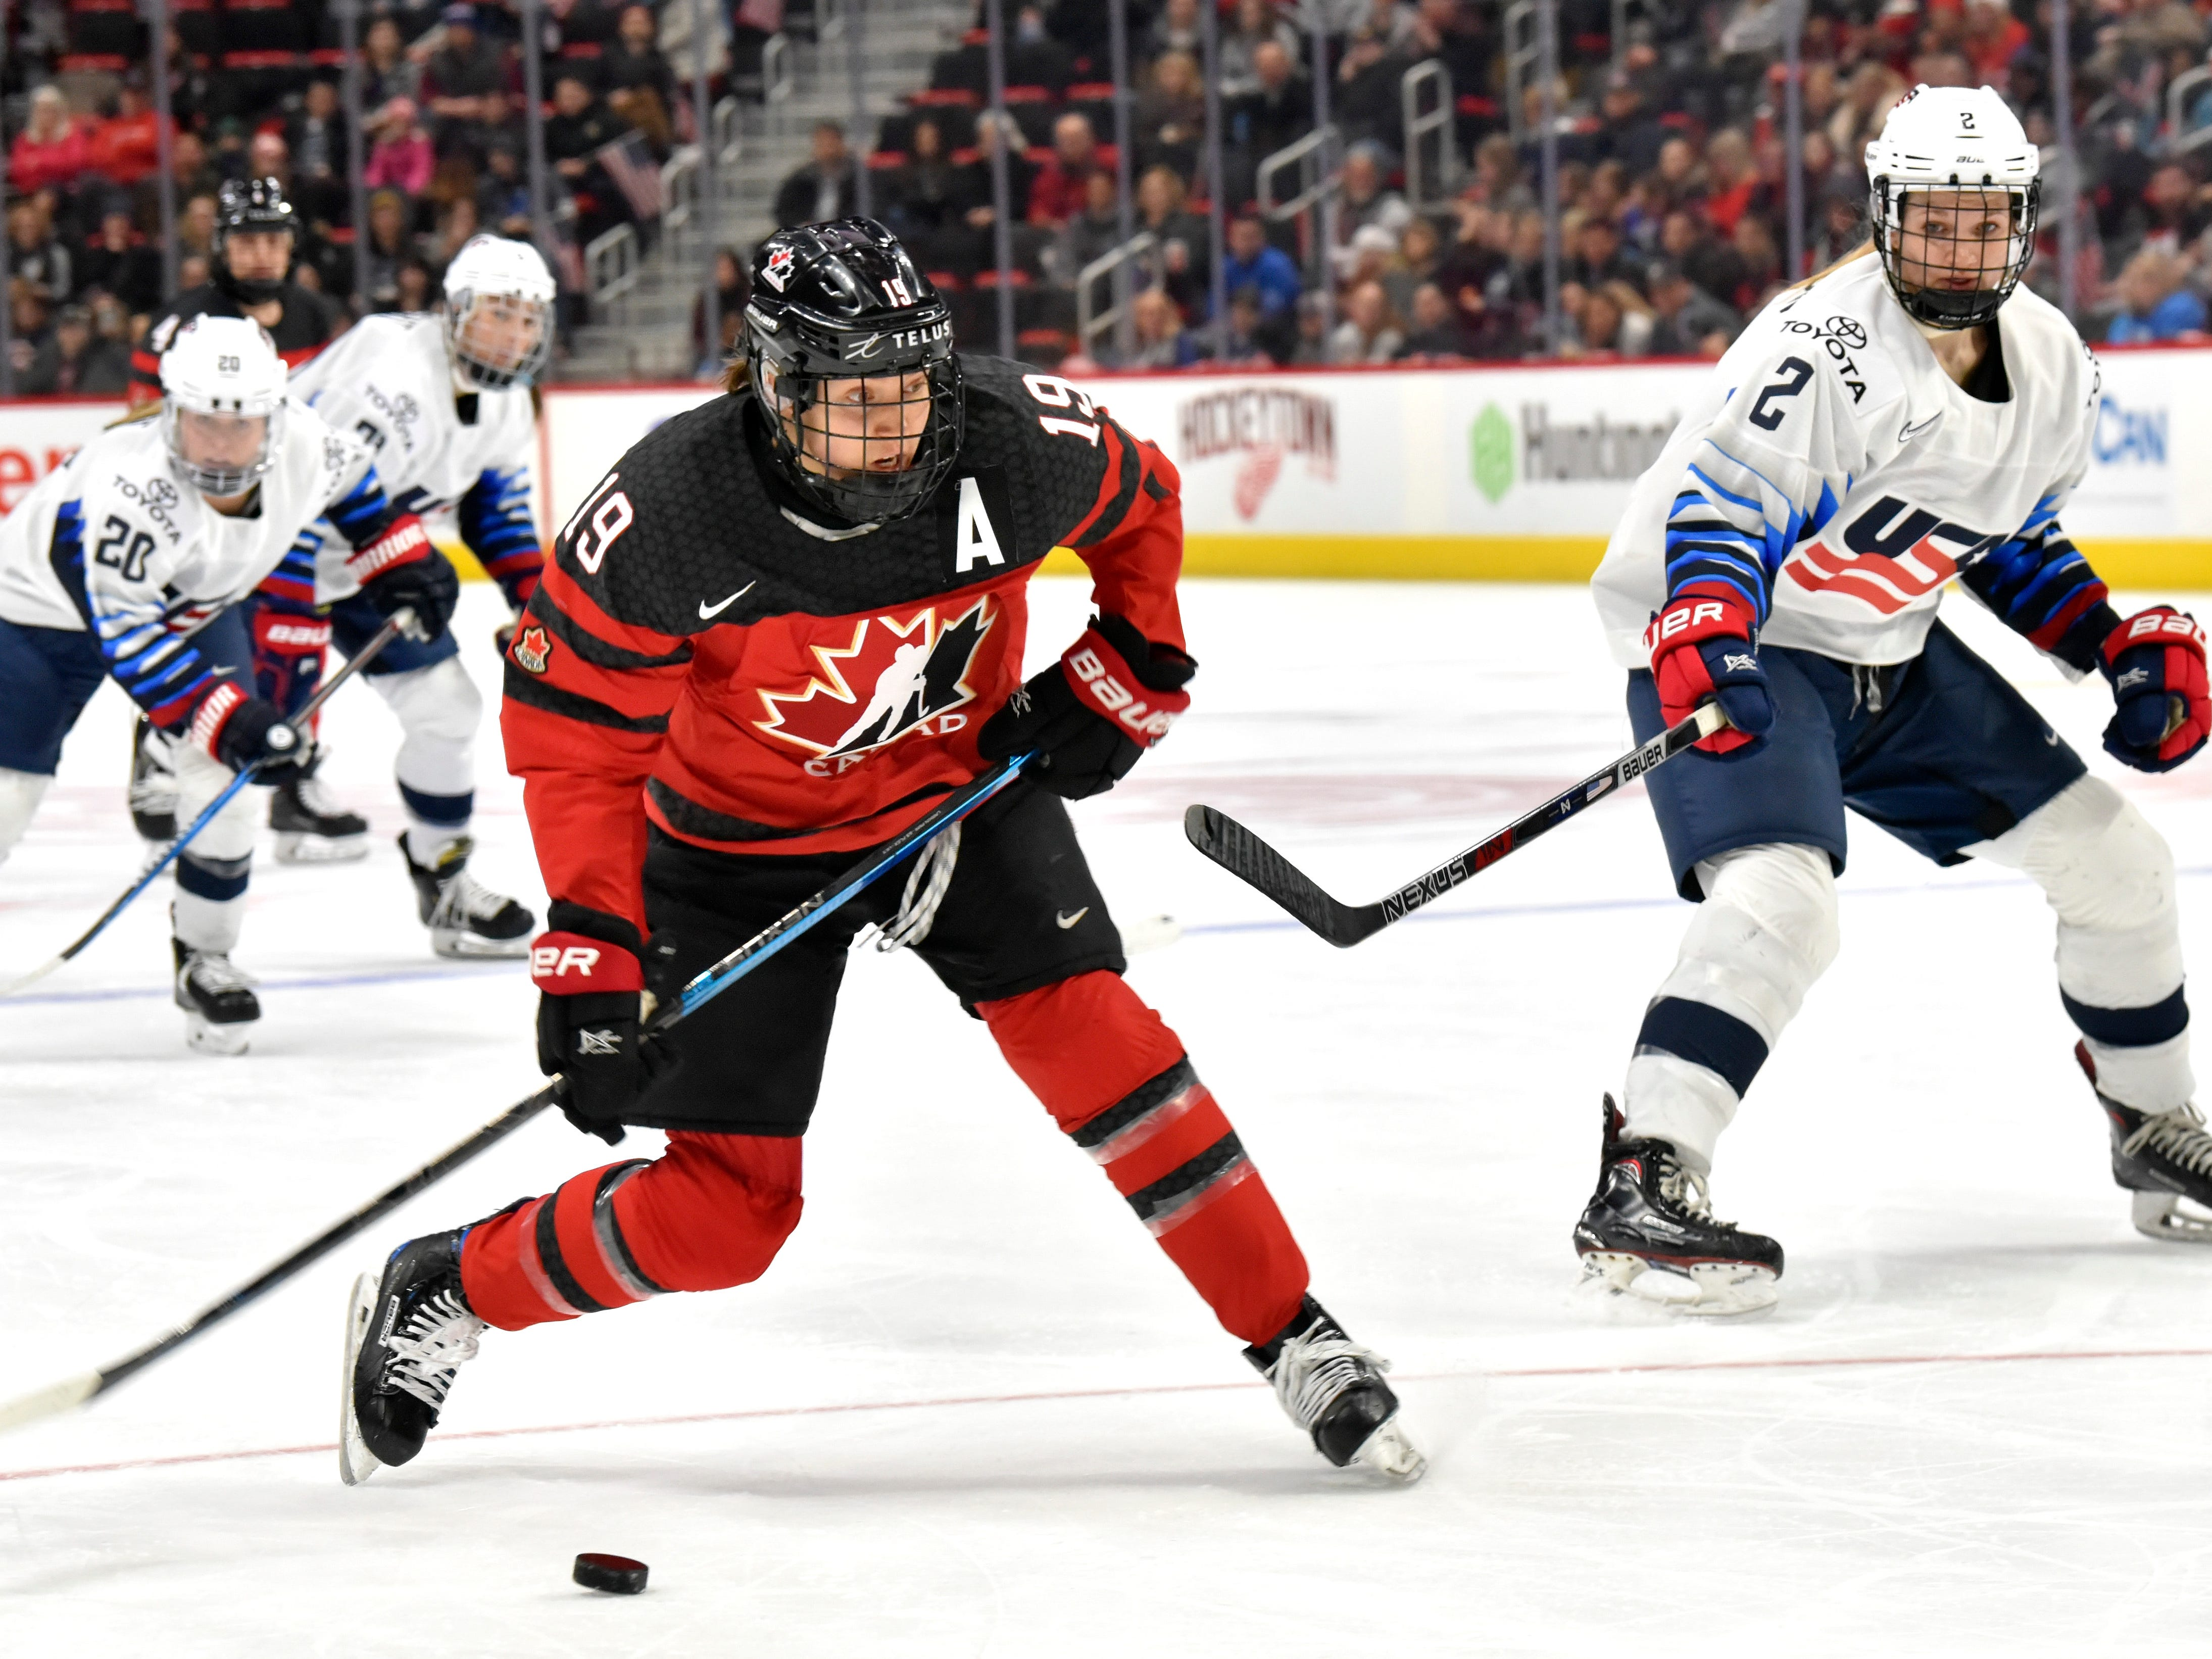 Canada's Brianne Jenner(19) shoots the puck with U.S's Lee Stecklein(2) nearby in the second period.